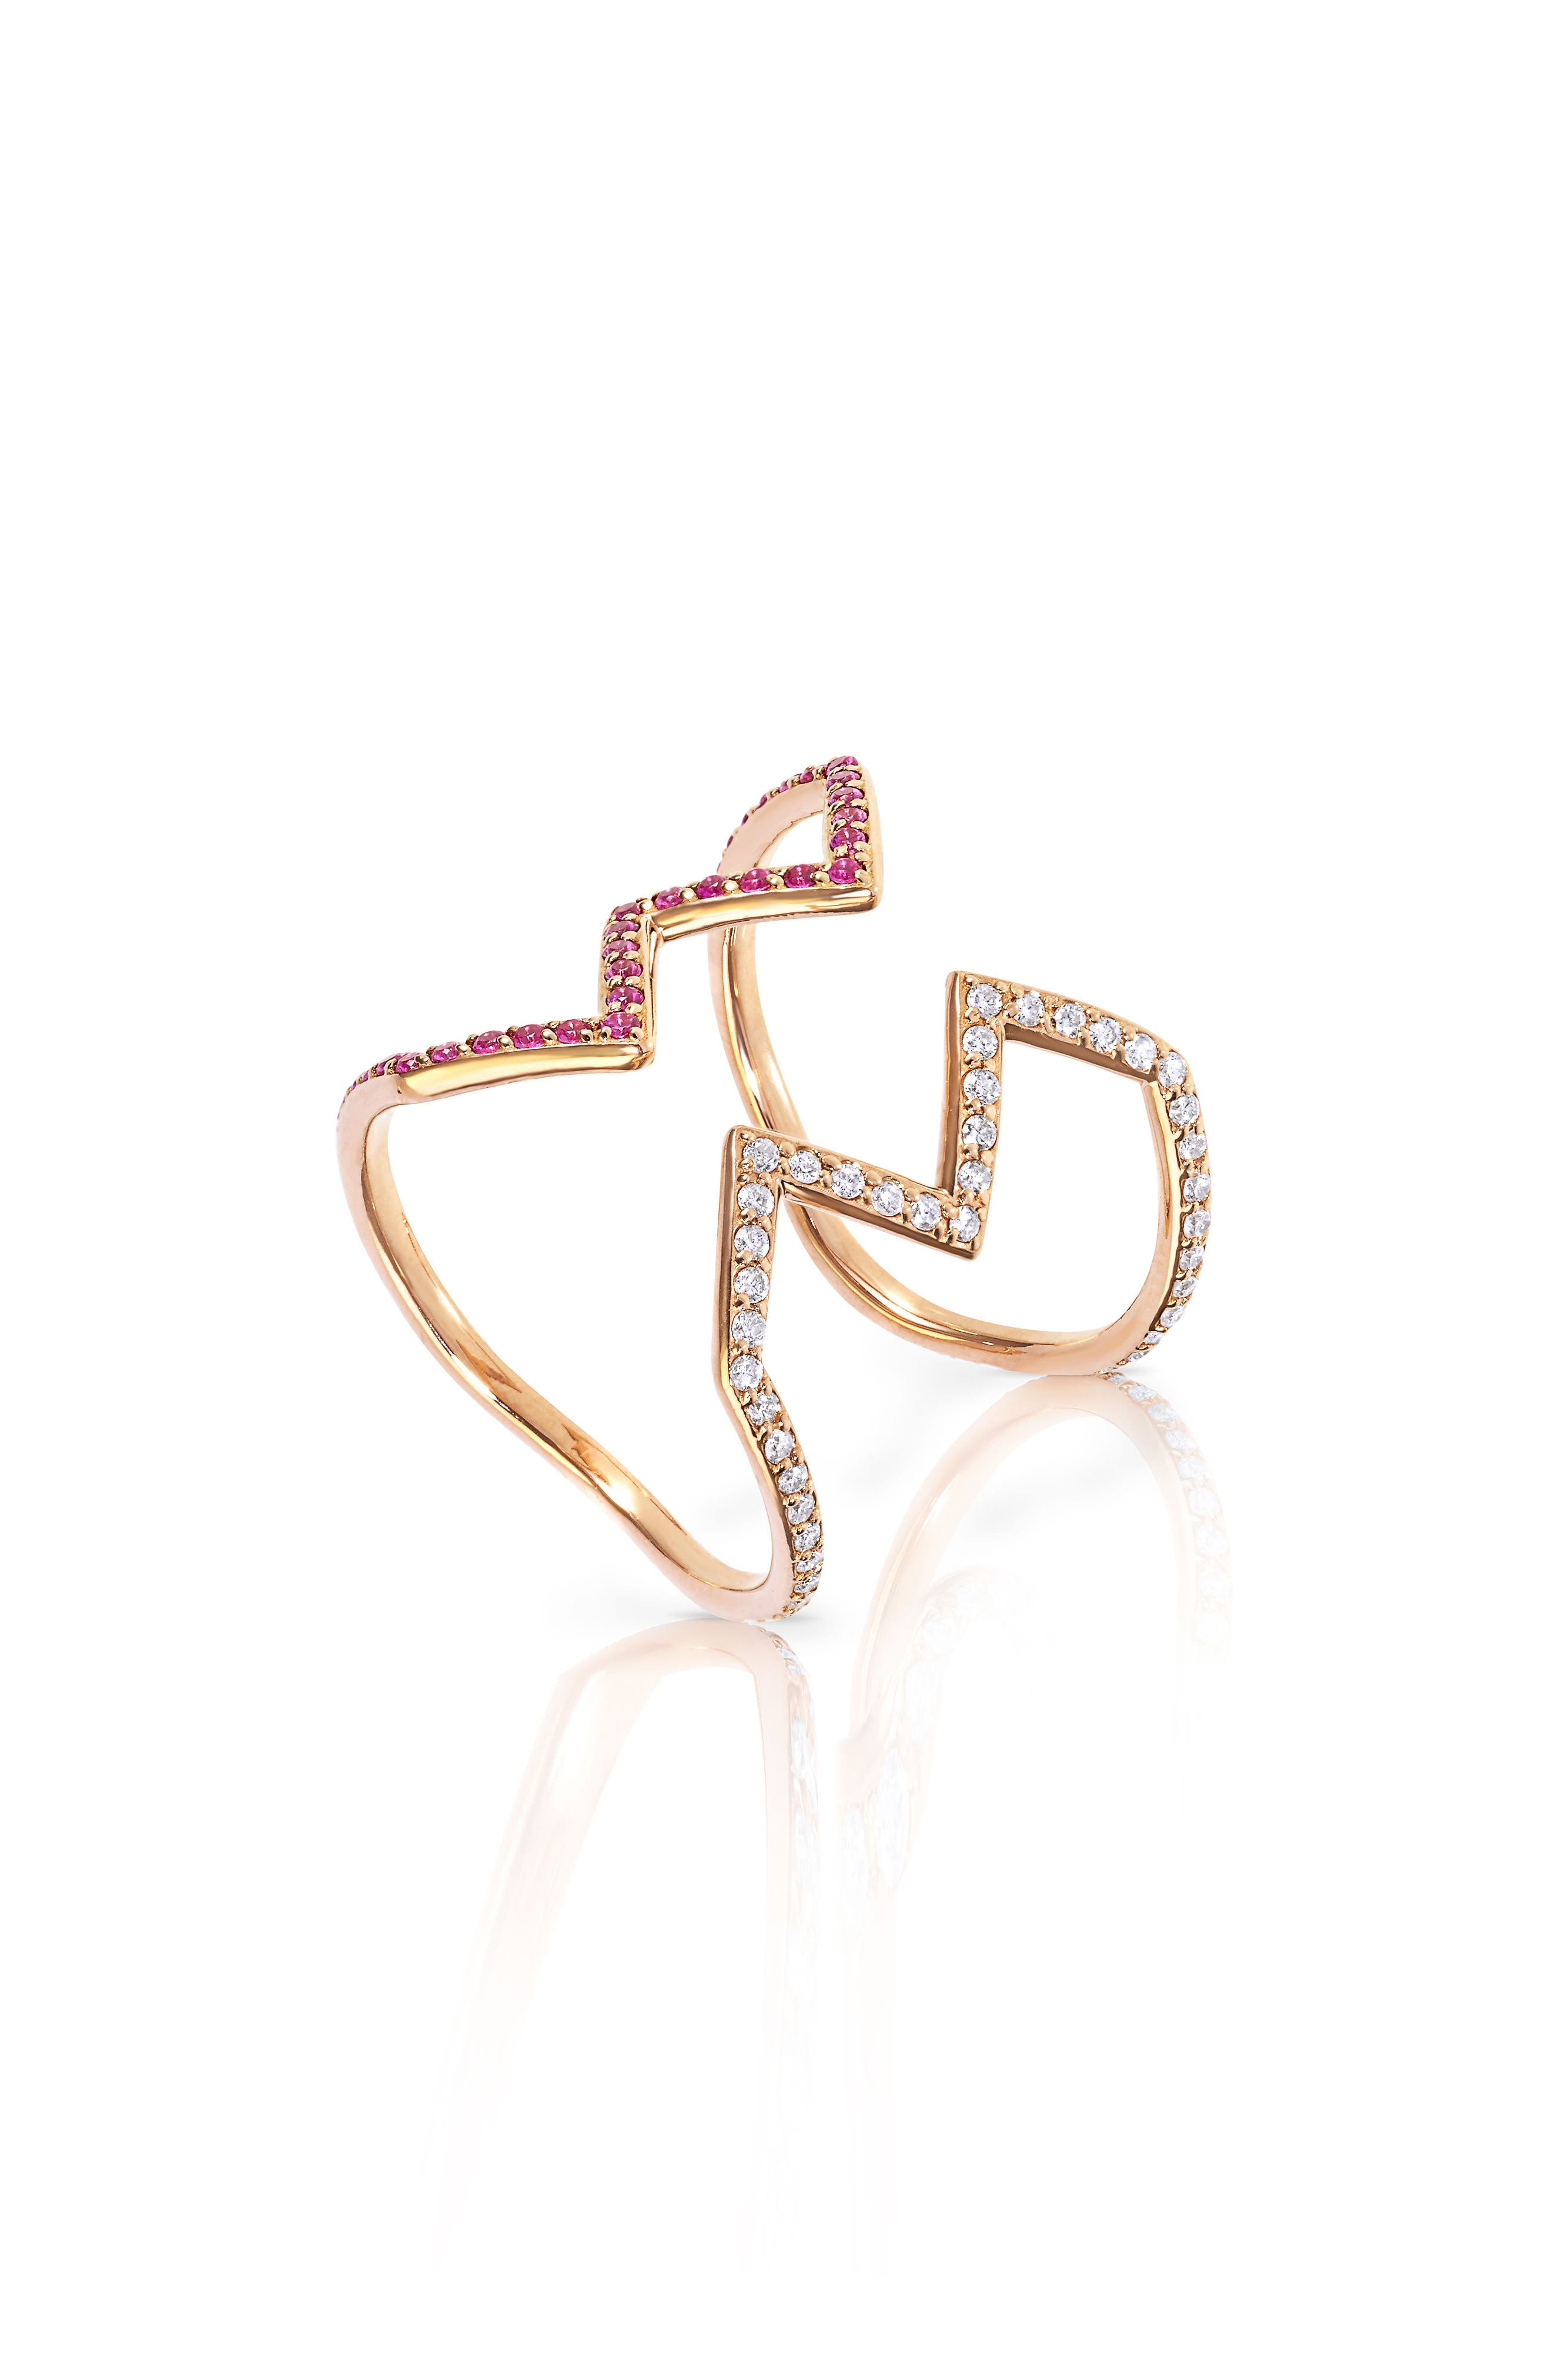 Sabine Getty Baby Memphis Open Ziggy Diamond & Pink Sapphire Ring